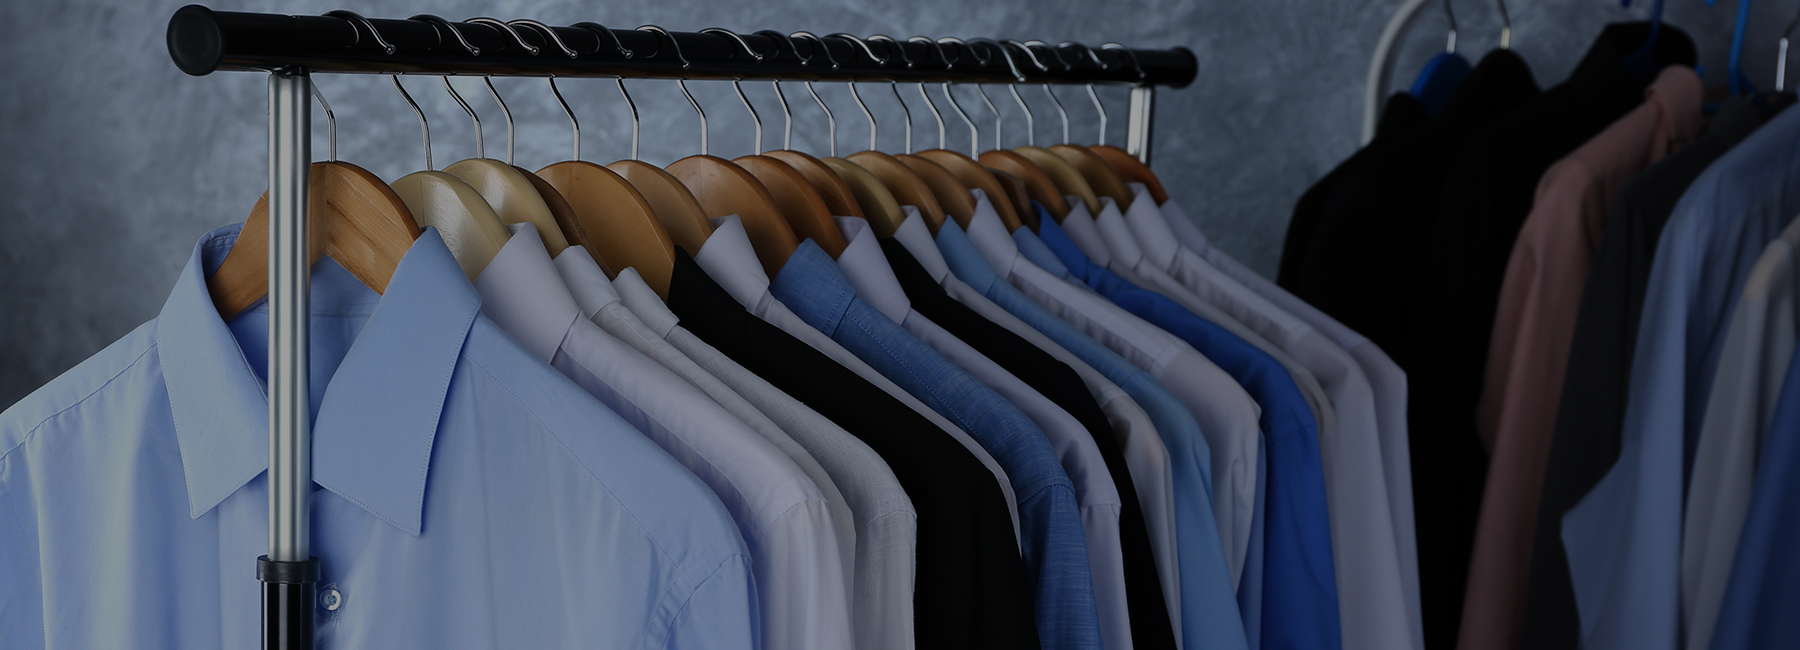 Dry cleaned dress shirts